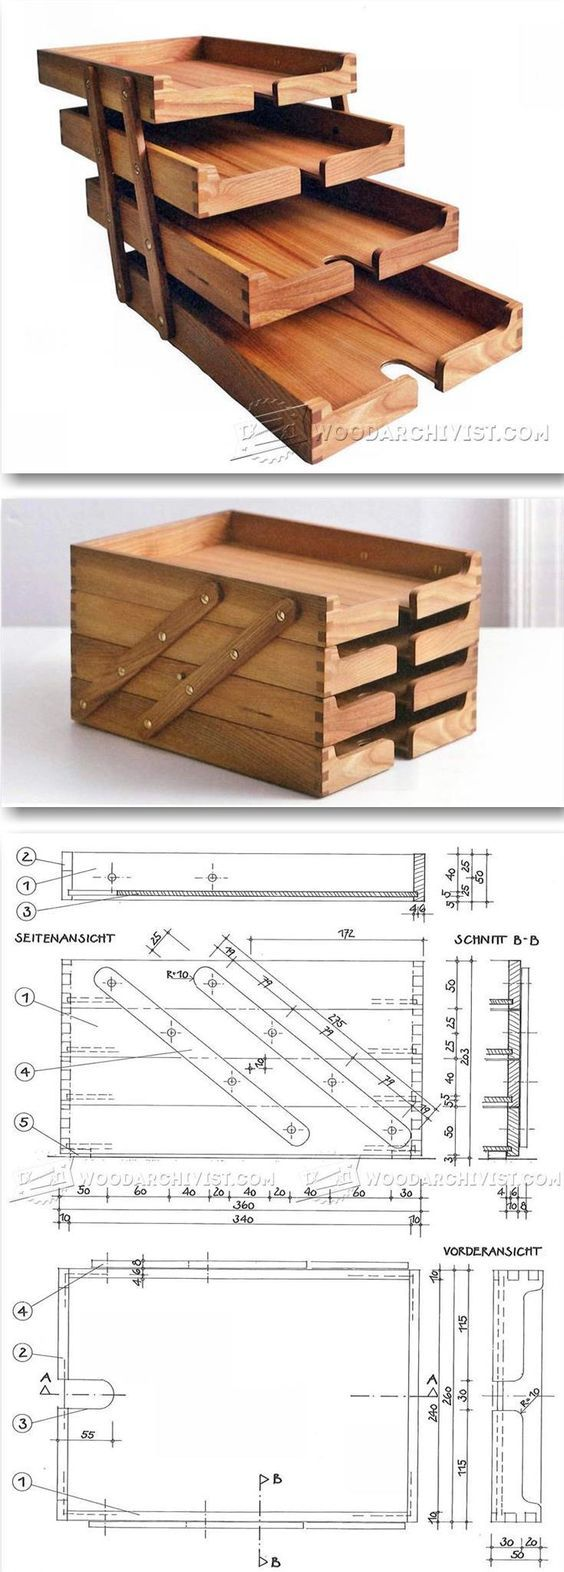 hight resolution of wooden desk tray plans woodworking plans and projects woodarchivist com